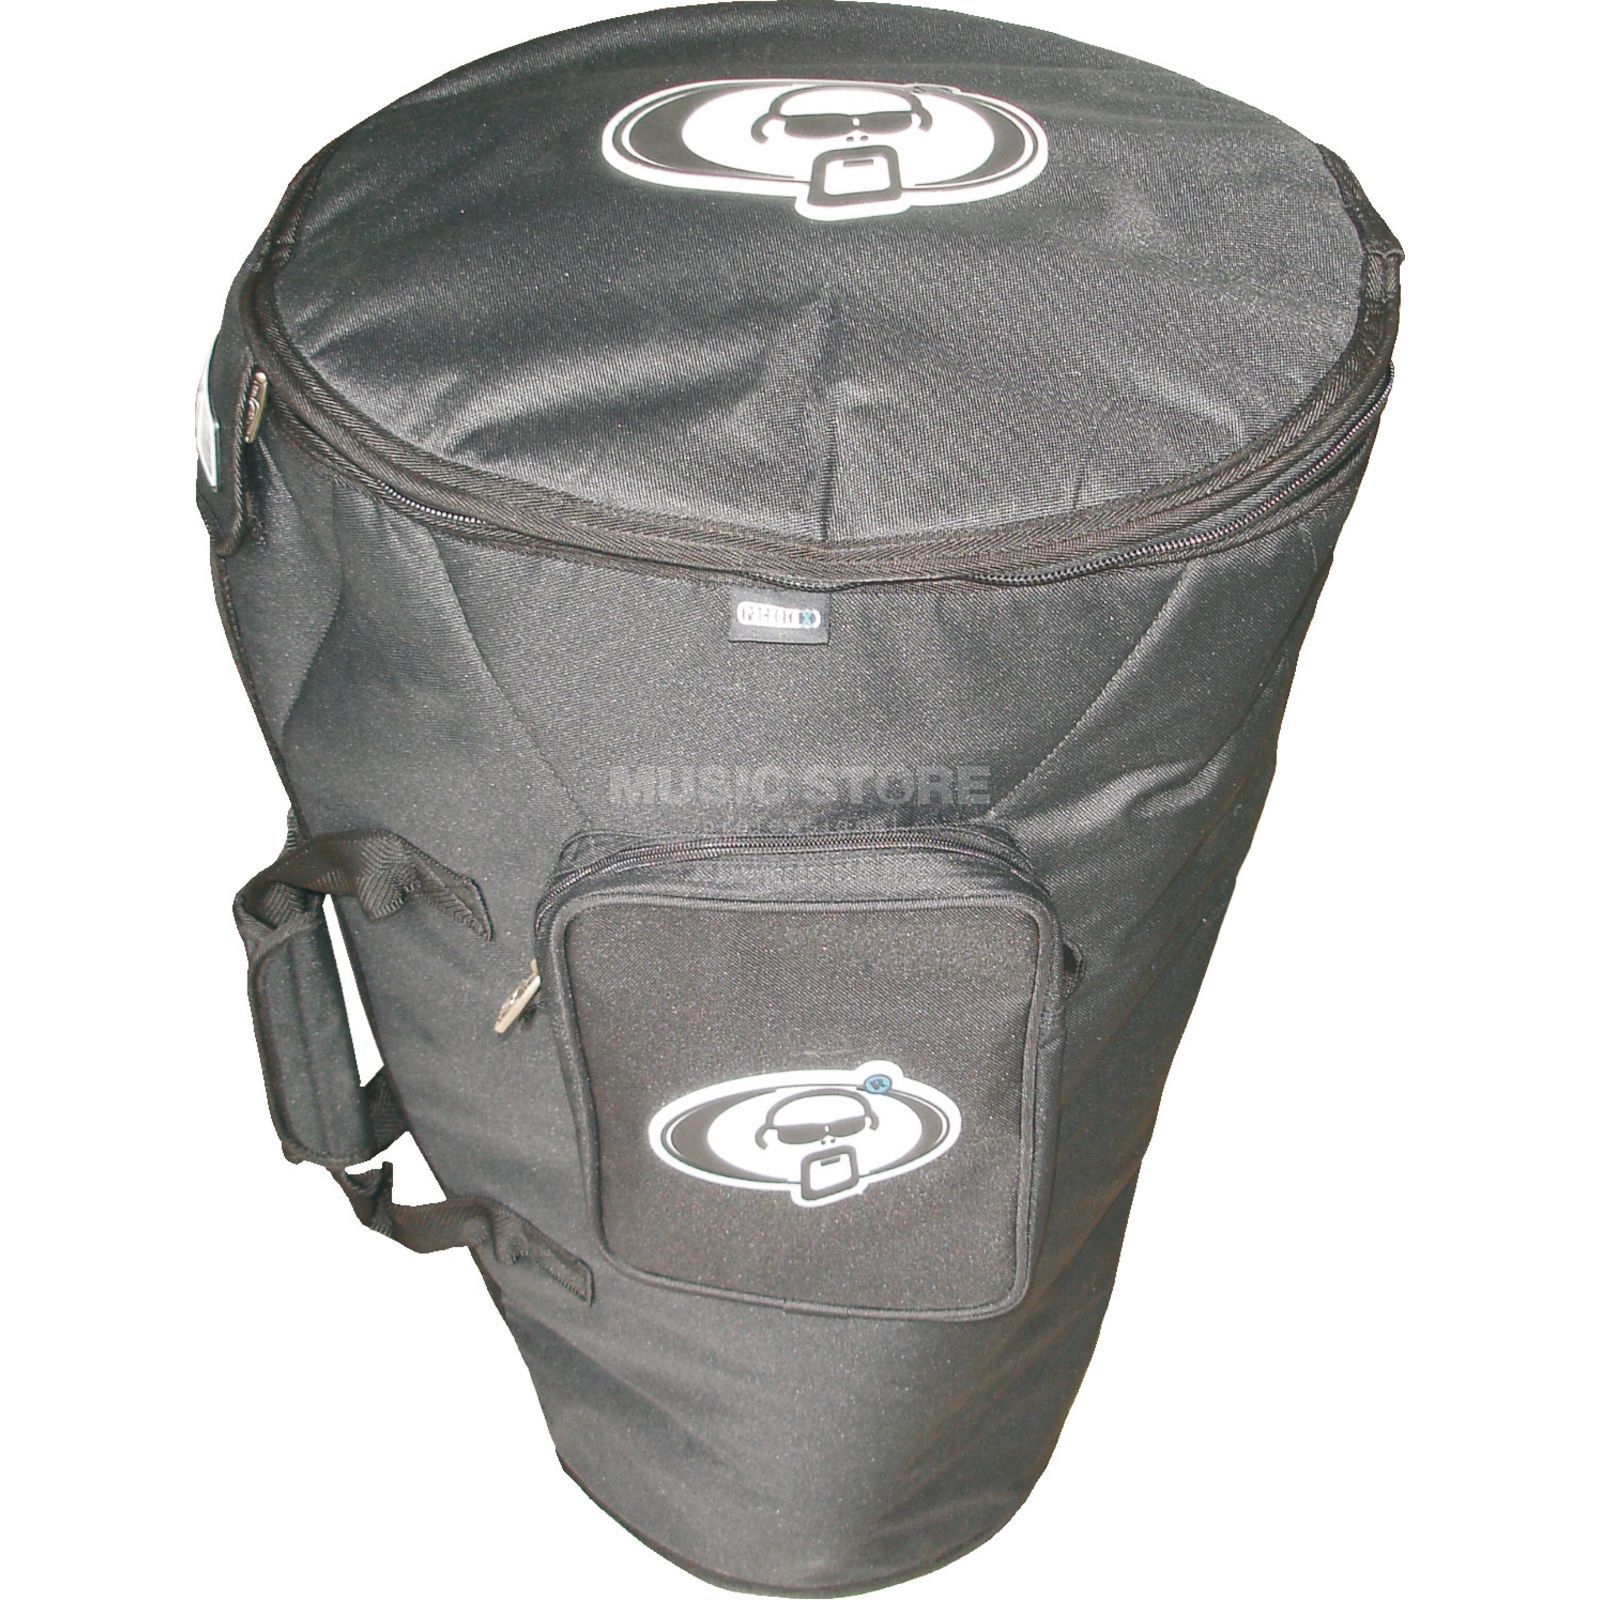 "Protection Racket Djembe Bag Deluxe 9112, 12"" x 24 1/2"" Produktbild"